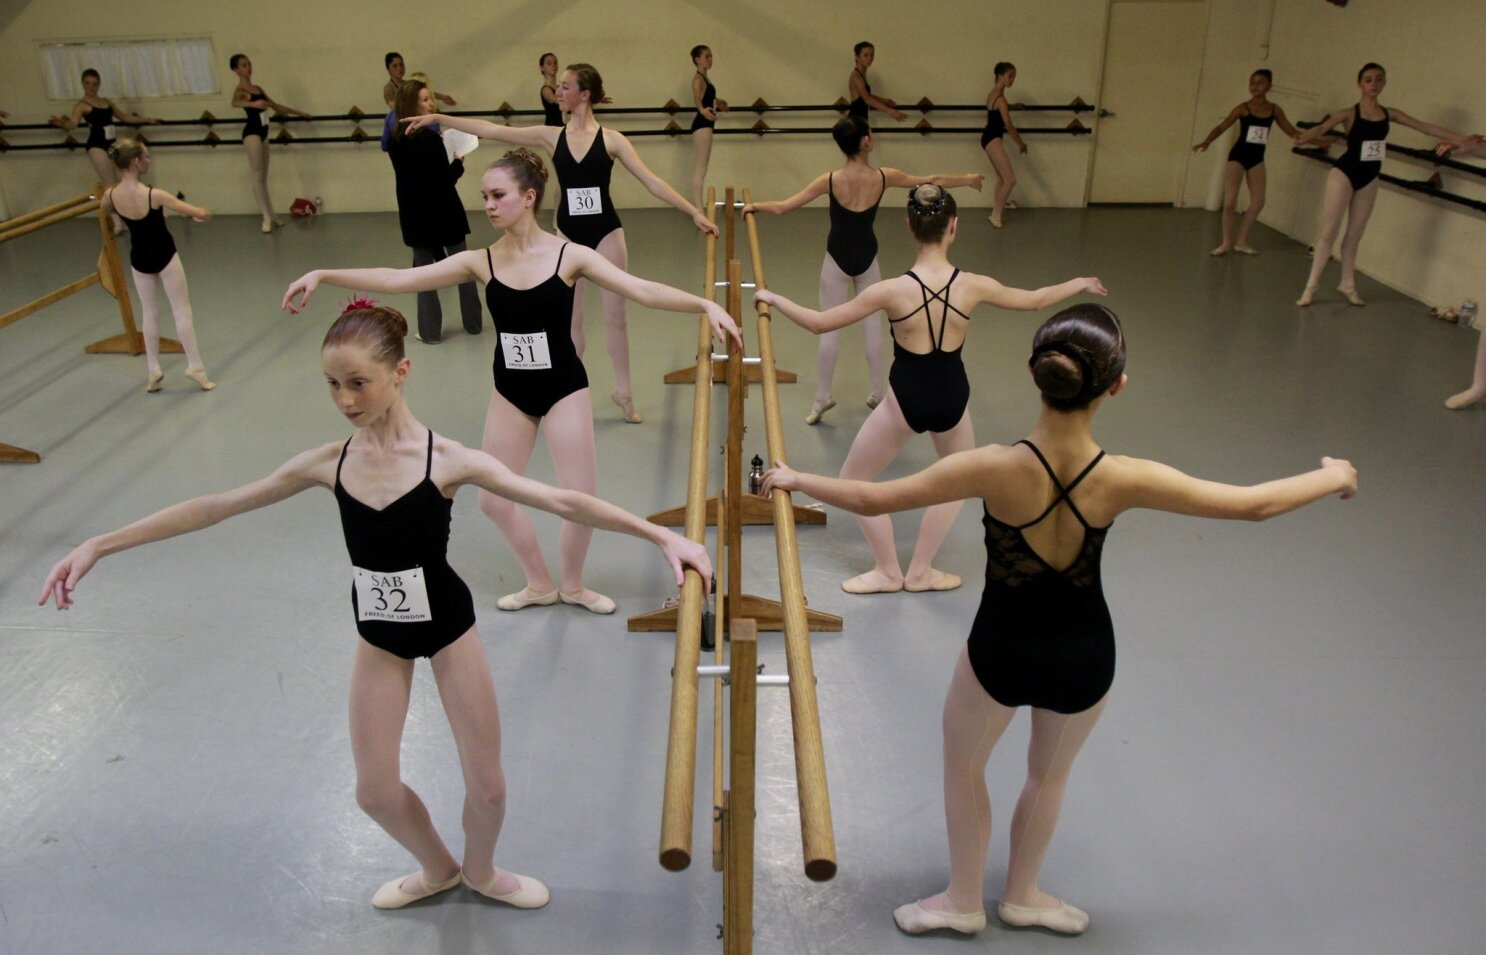 Dancers audition for New York City program - The San Diego